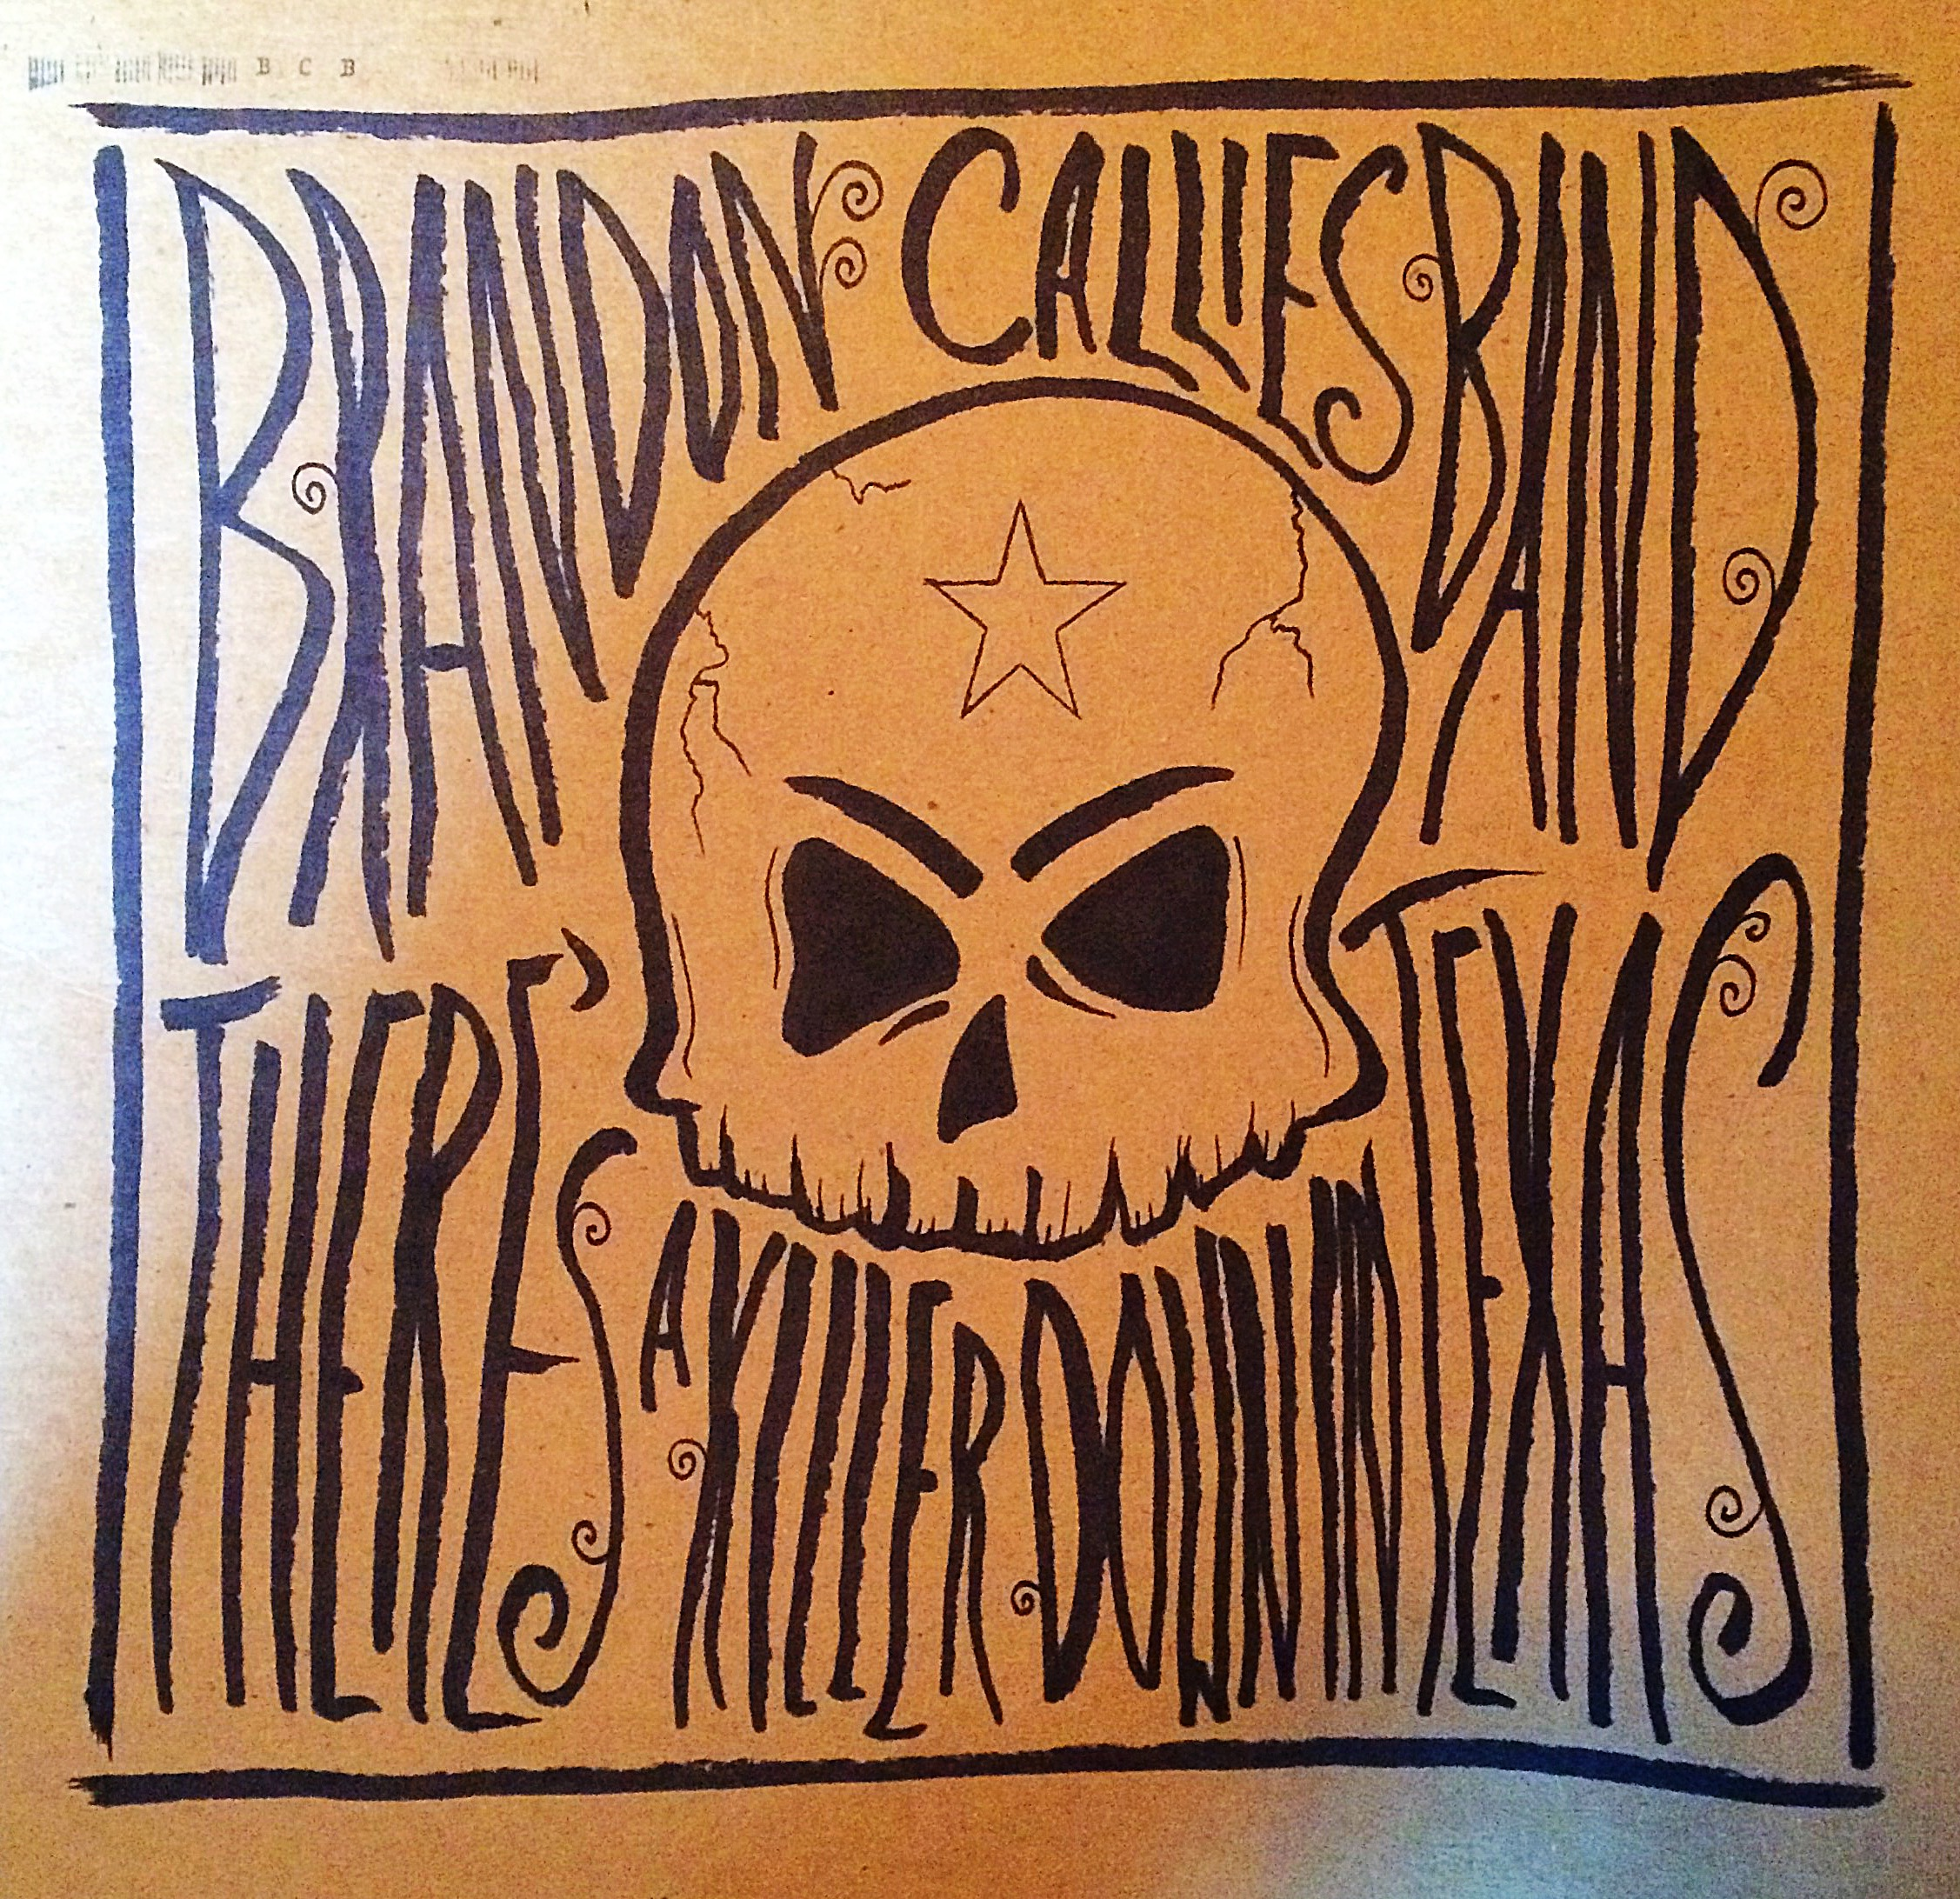 """There's a Killer Down in Texas"" by Brandon Callies Band // Vinyl Jacket"